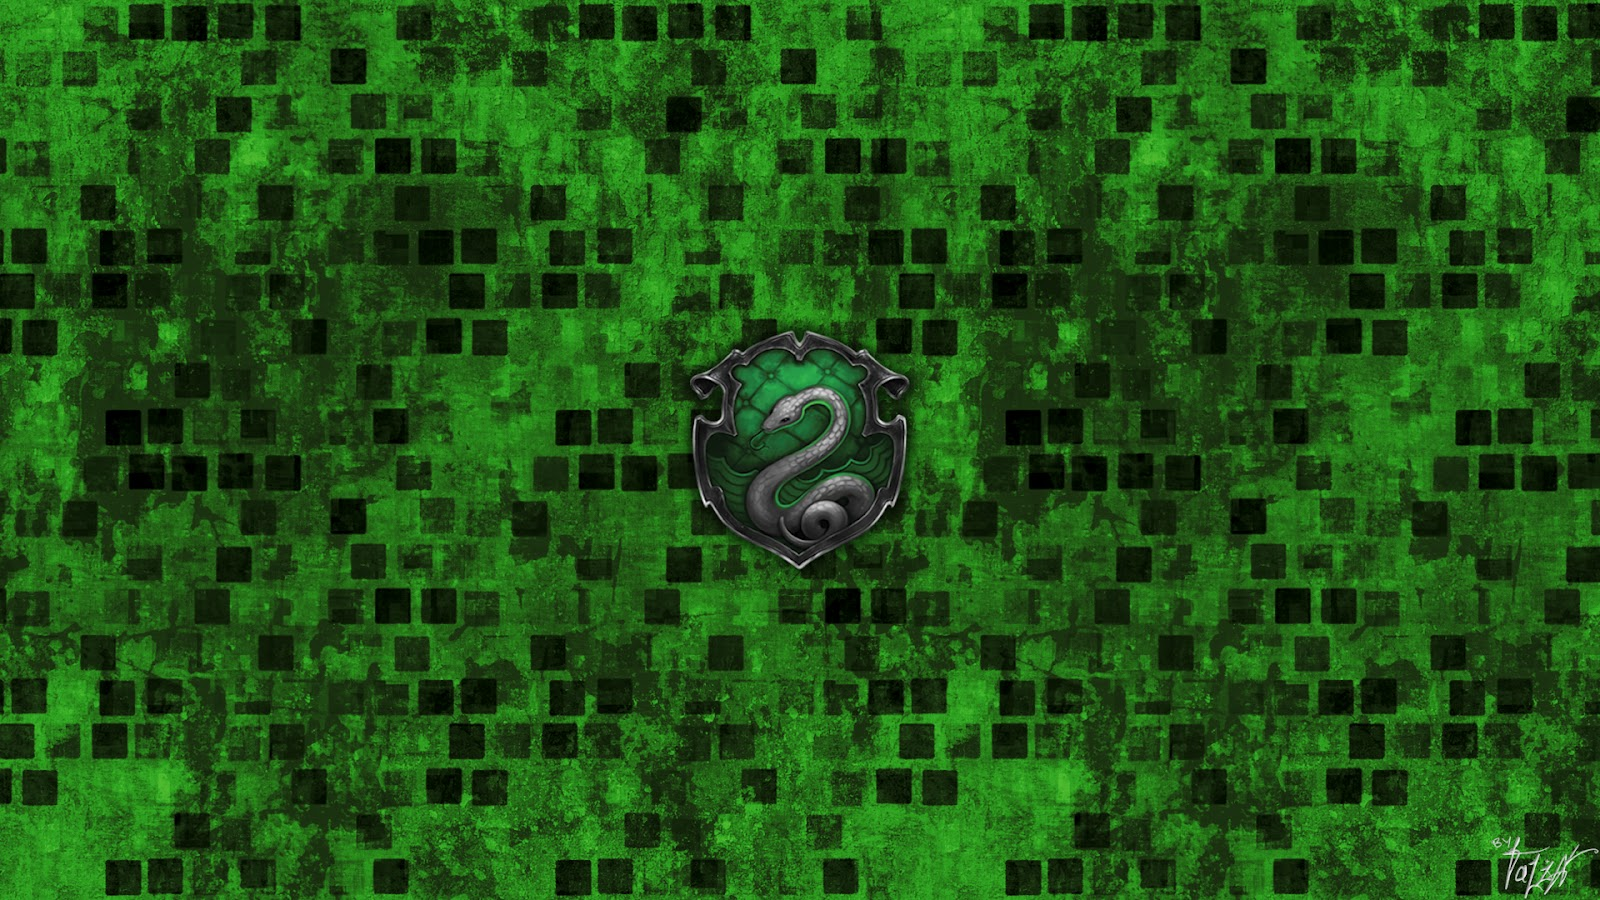 Harry Potter Slytherin Wallpaper Slytherin cunning and devious 1600x900